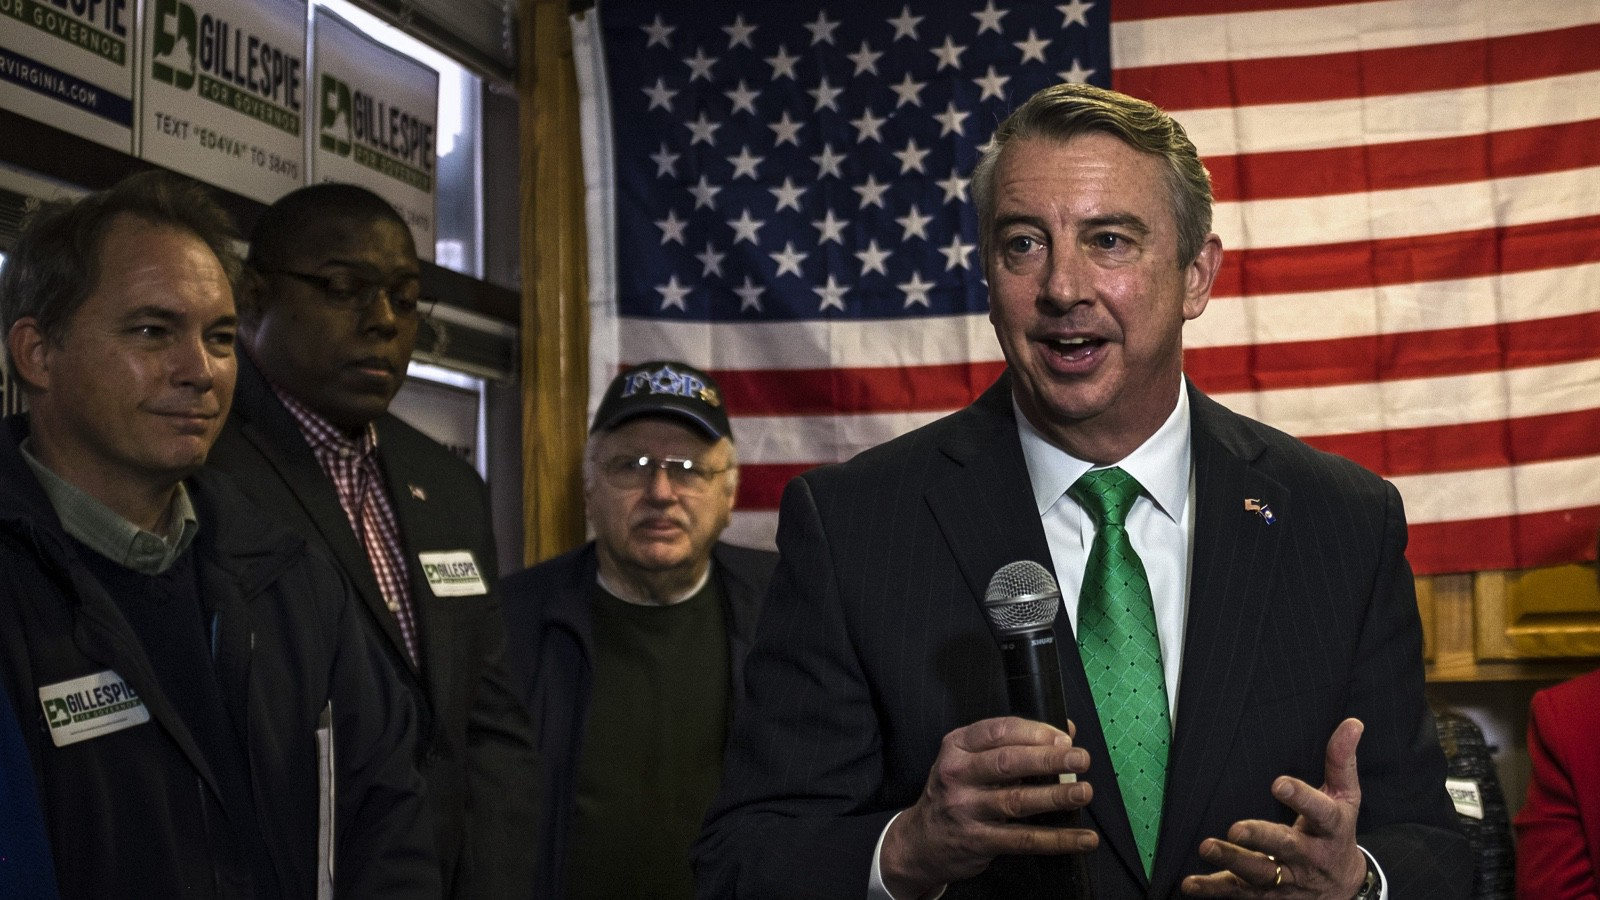 Former Republican National Committee and Republican Party of Virginia Chairman Ed Gillespie